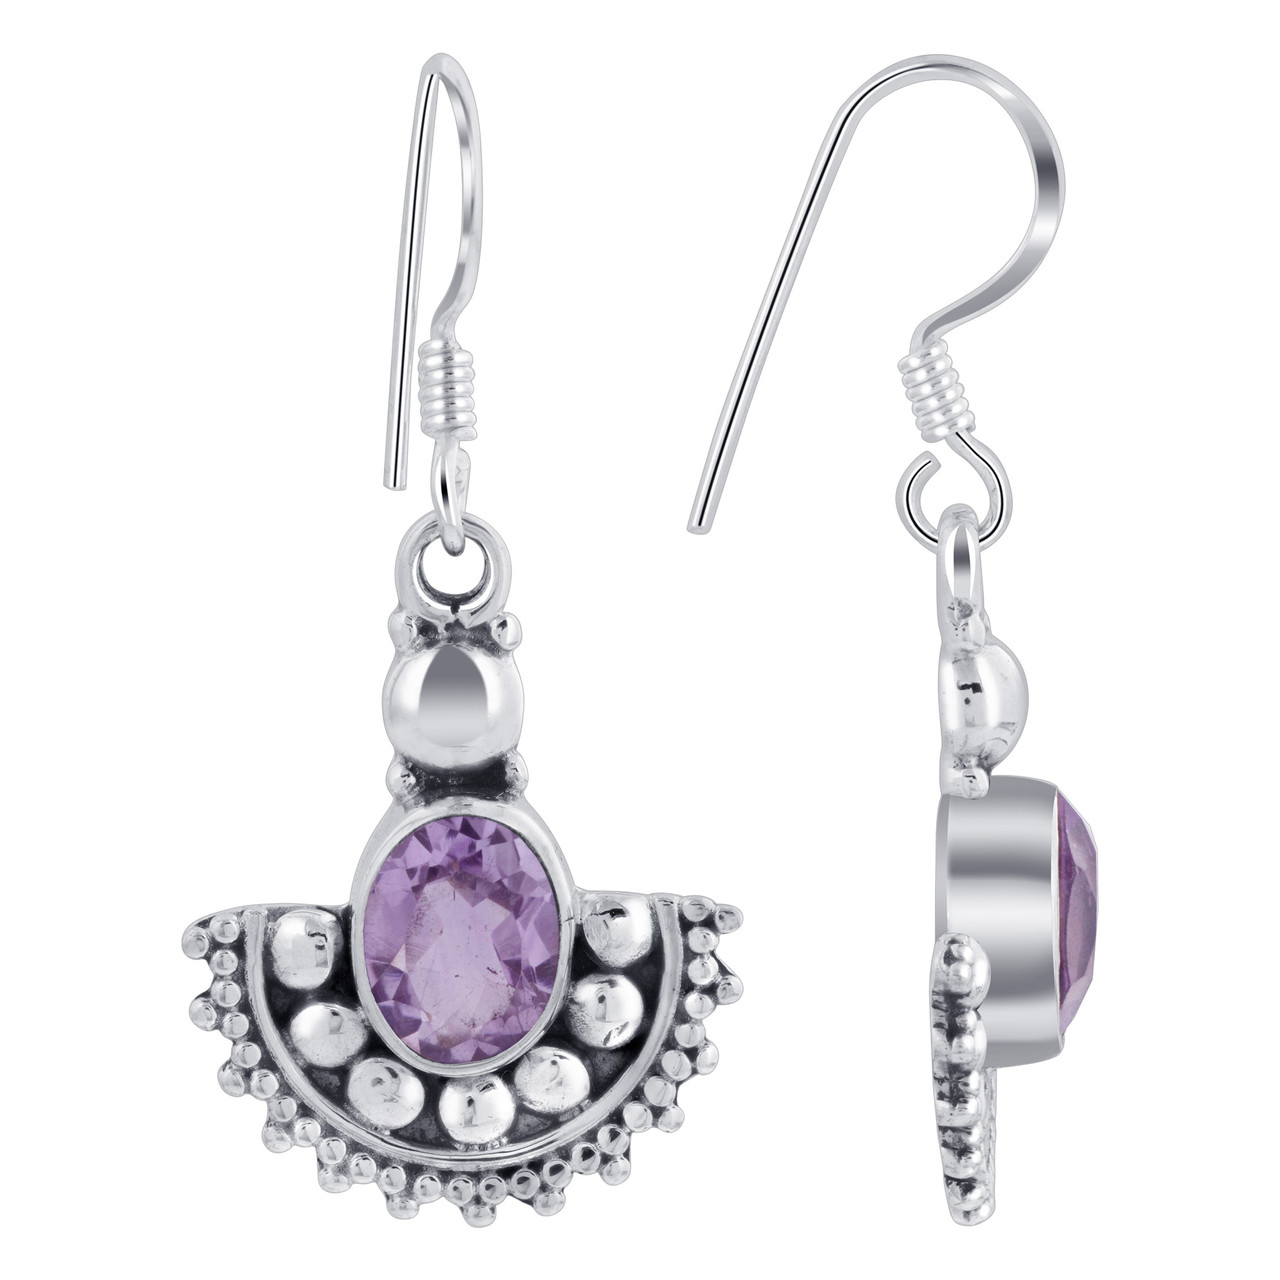 925 Silver Oval Shape Genuine Amethyst Drop Earrings